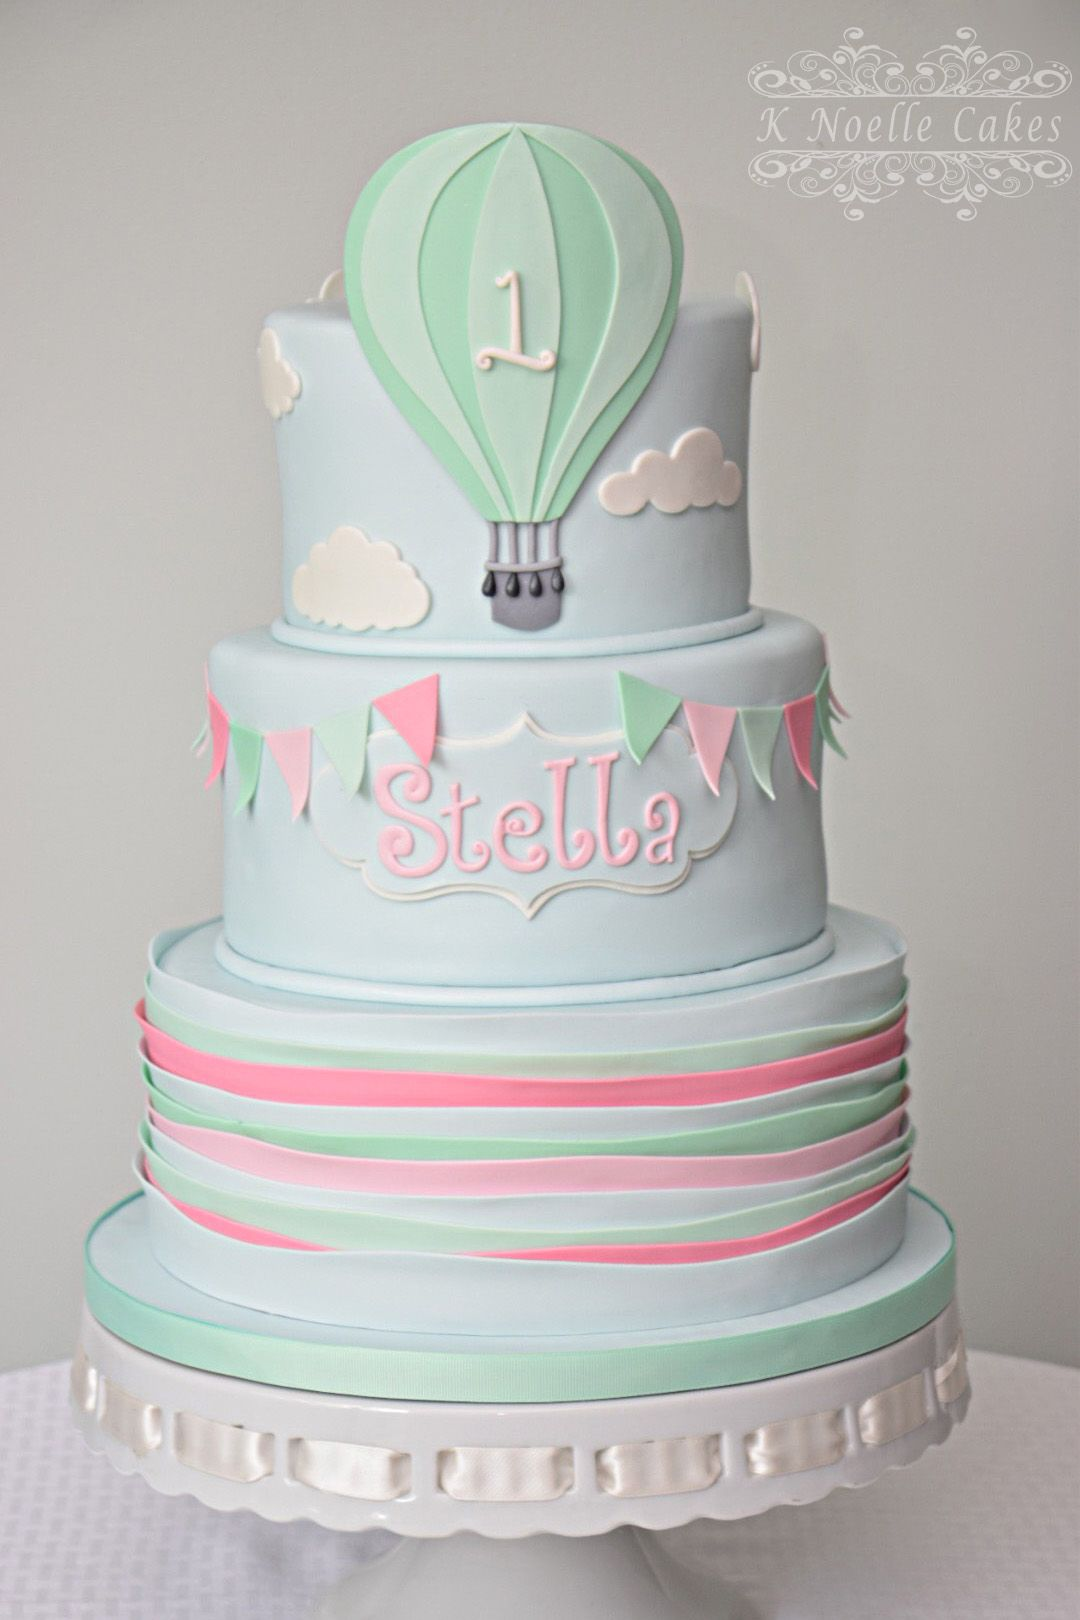 Stupendous 1St Birthday Cake With Hot Air Balloon Theme By K Noelle Cakes Funny Birthday Cards Online Necthendildamsfinfo